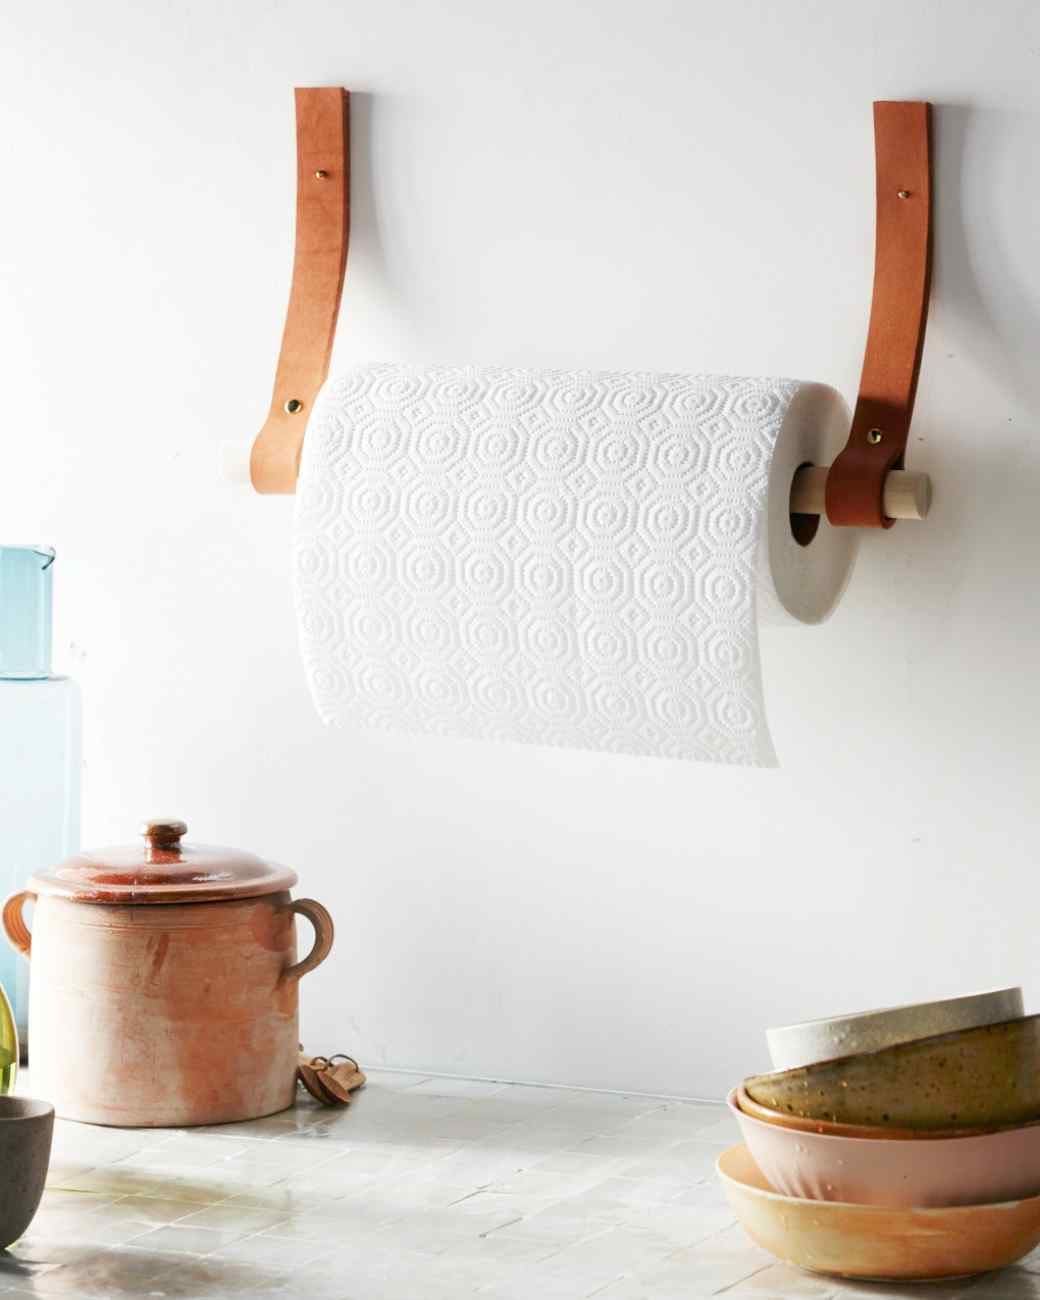 Leather straps paper towel holder